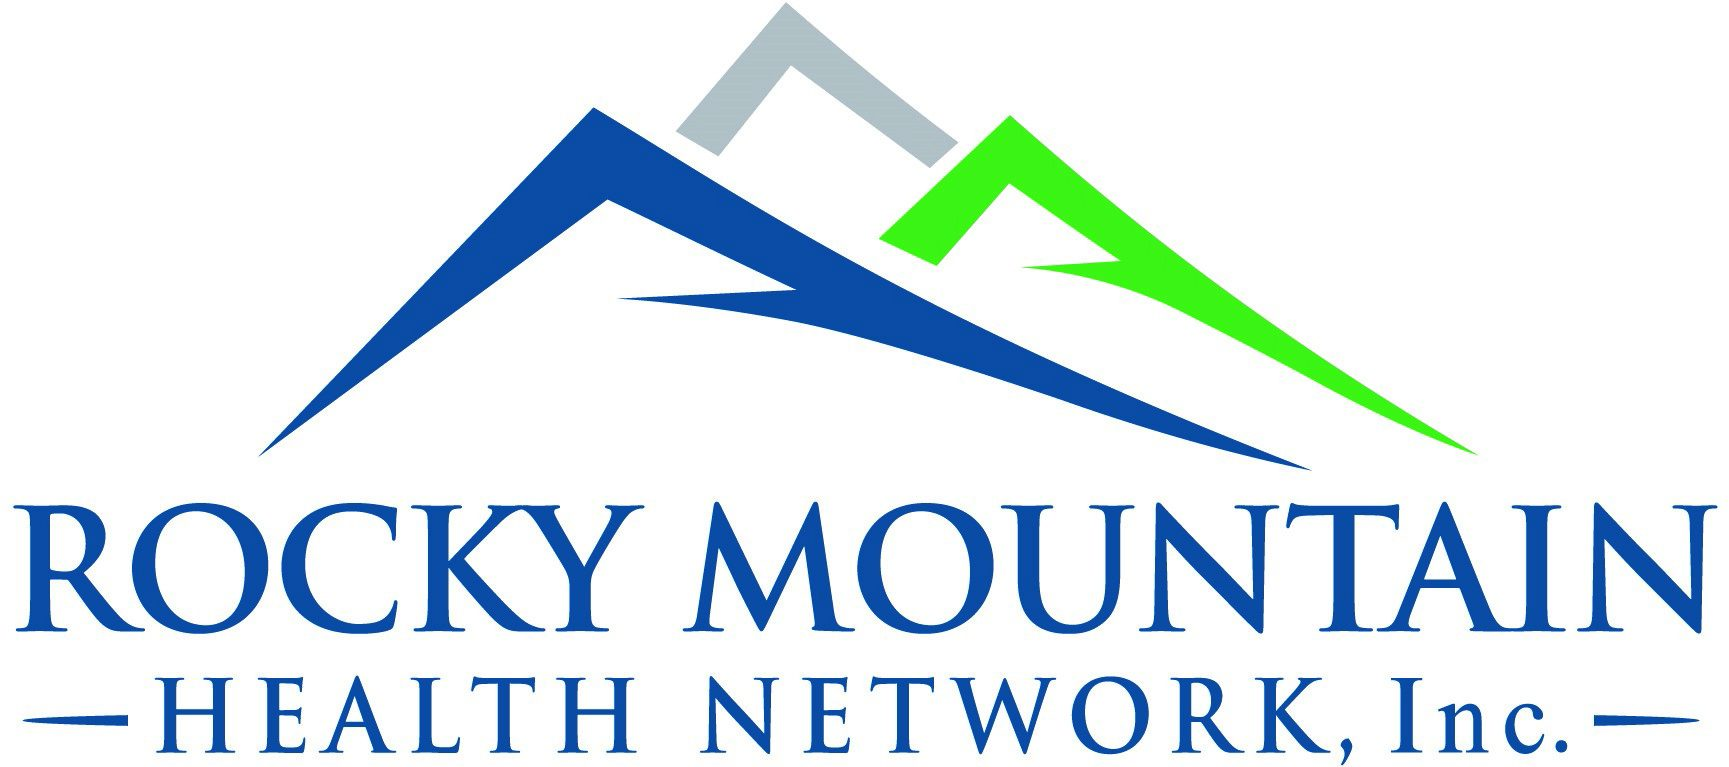 Rocky Mountain Health Network